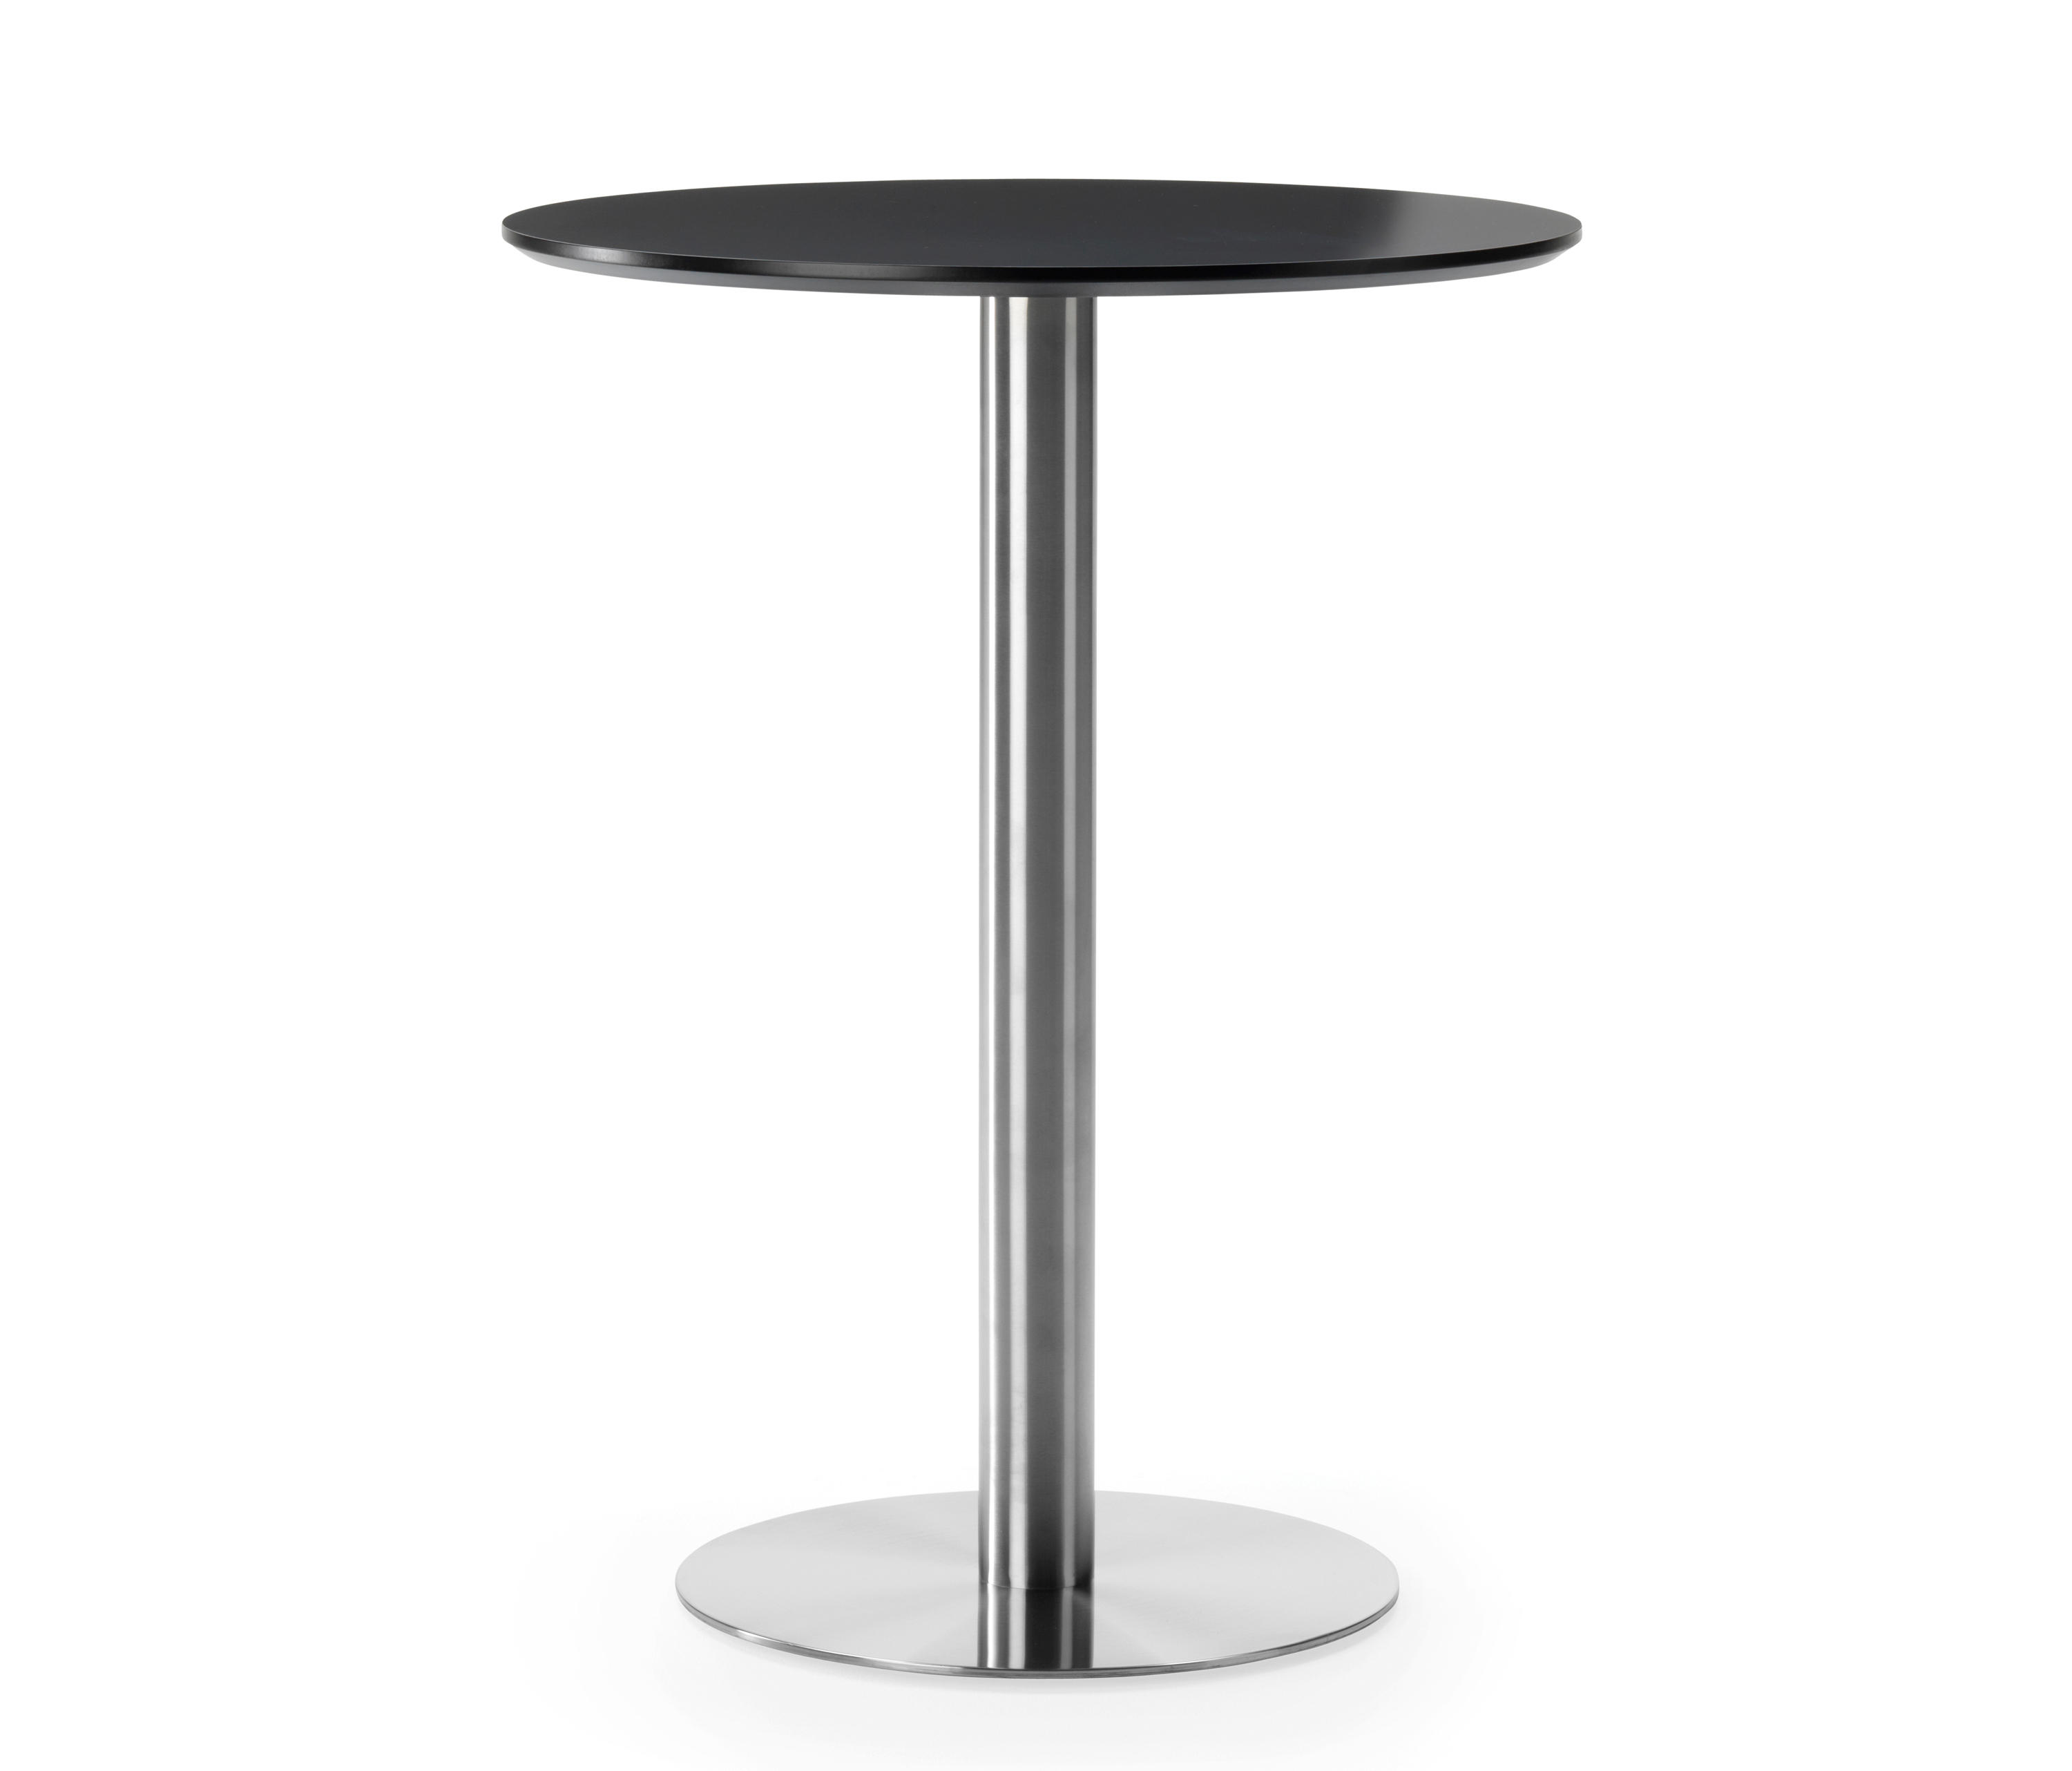 Cafe Table CafÉ Table Standing Tables From Cube Design Architonic